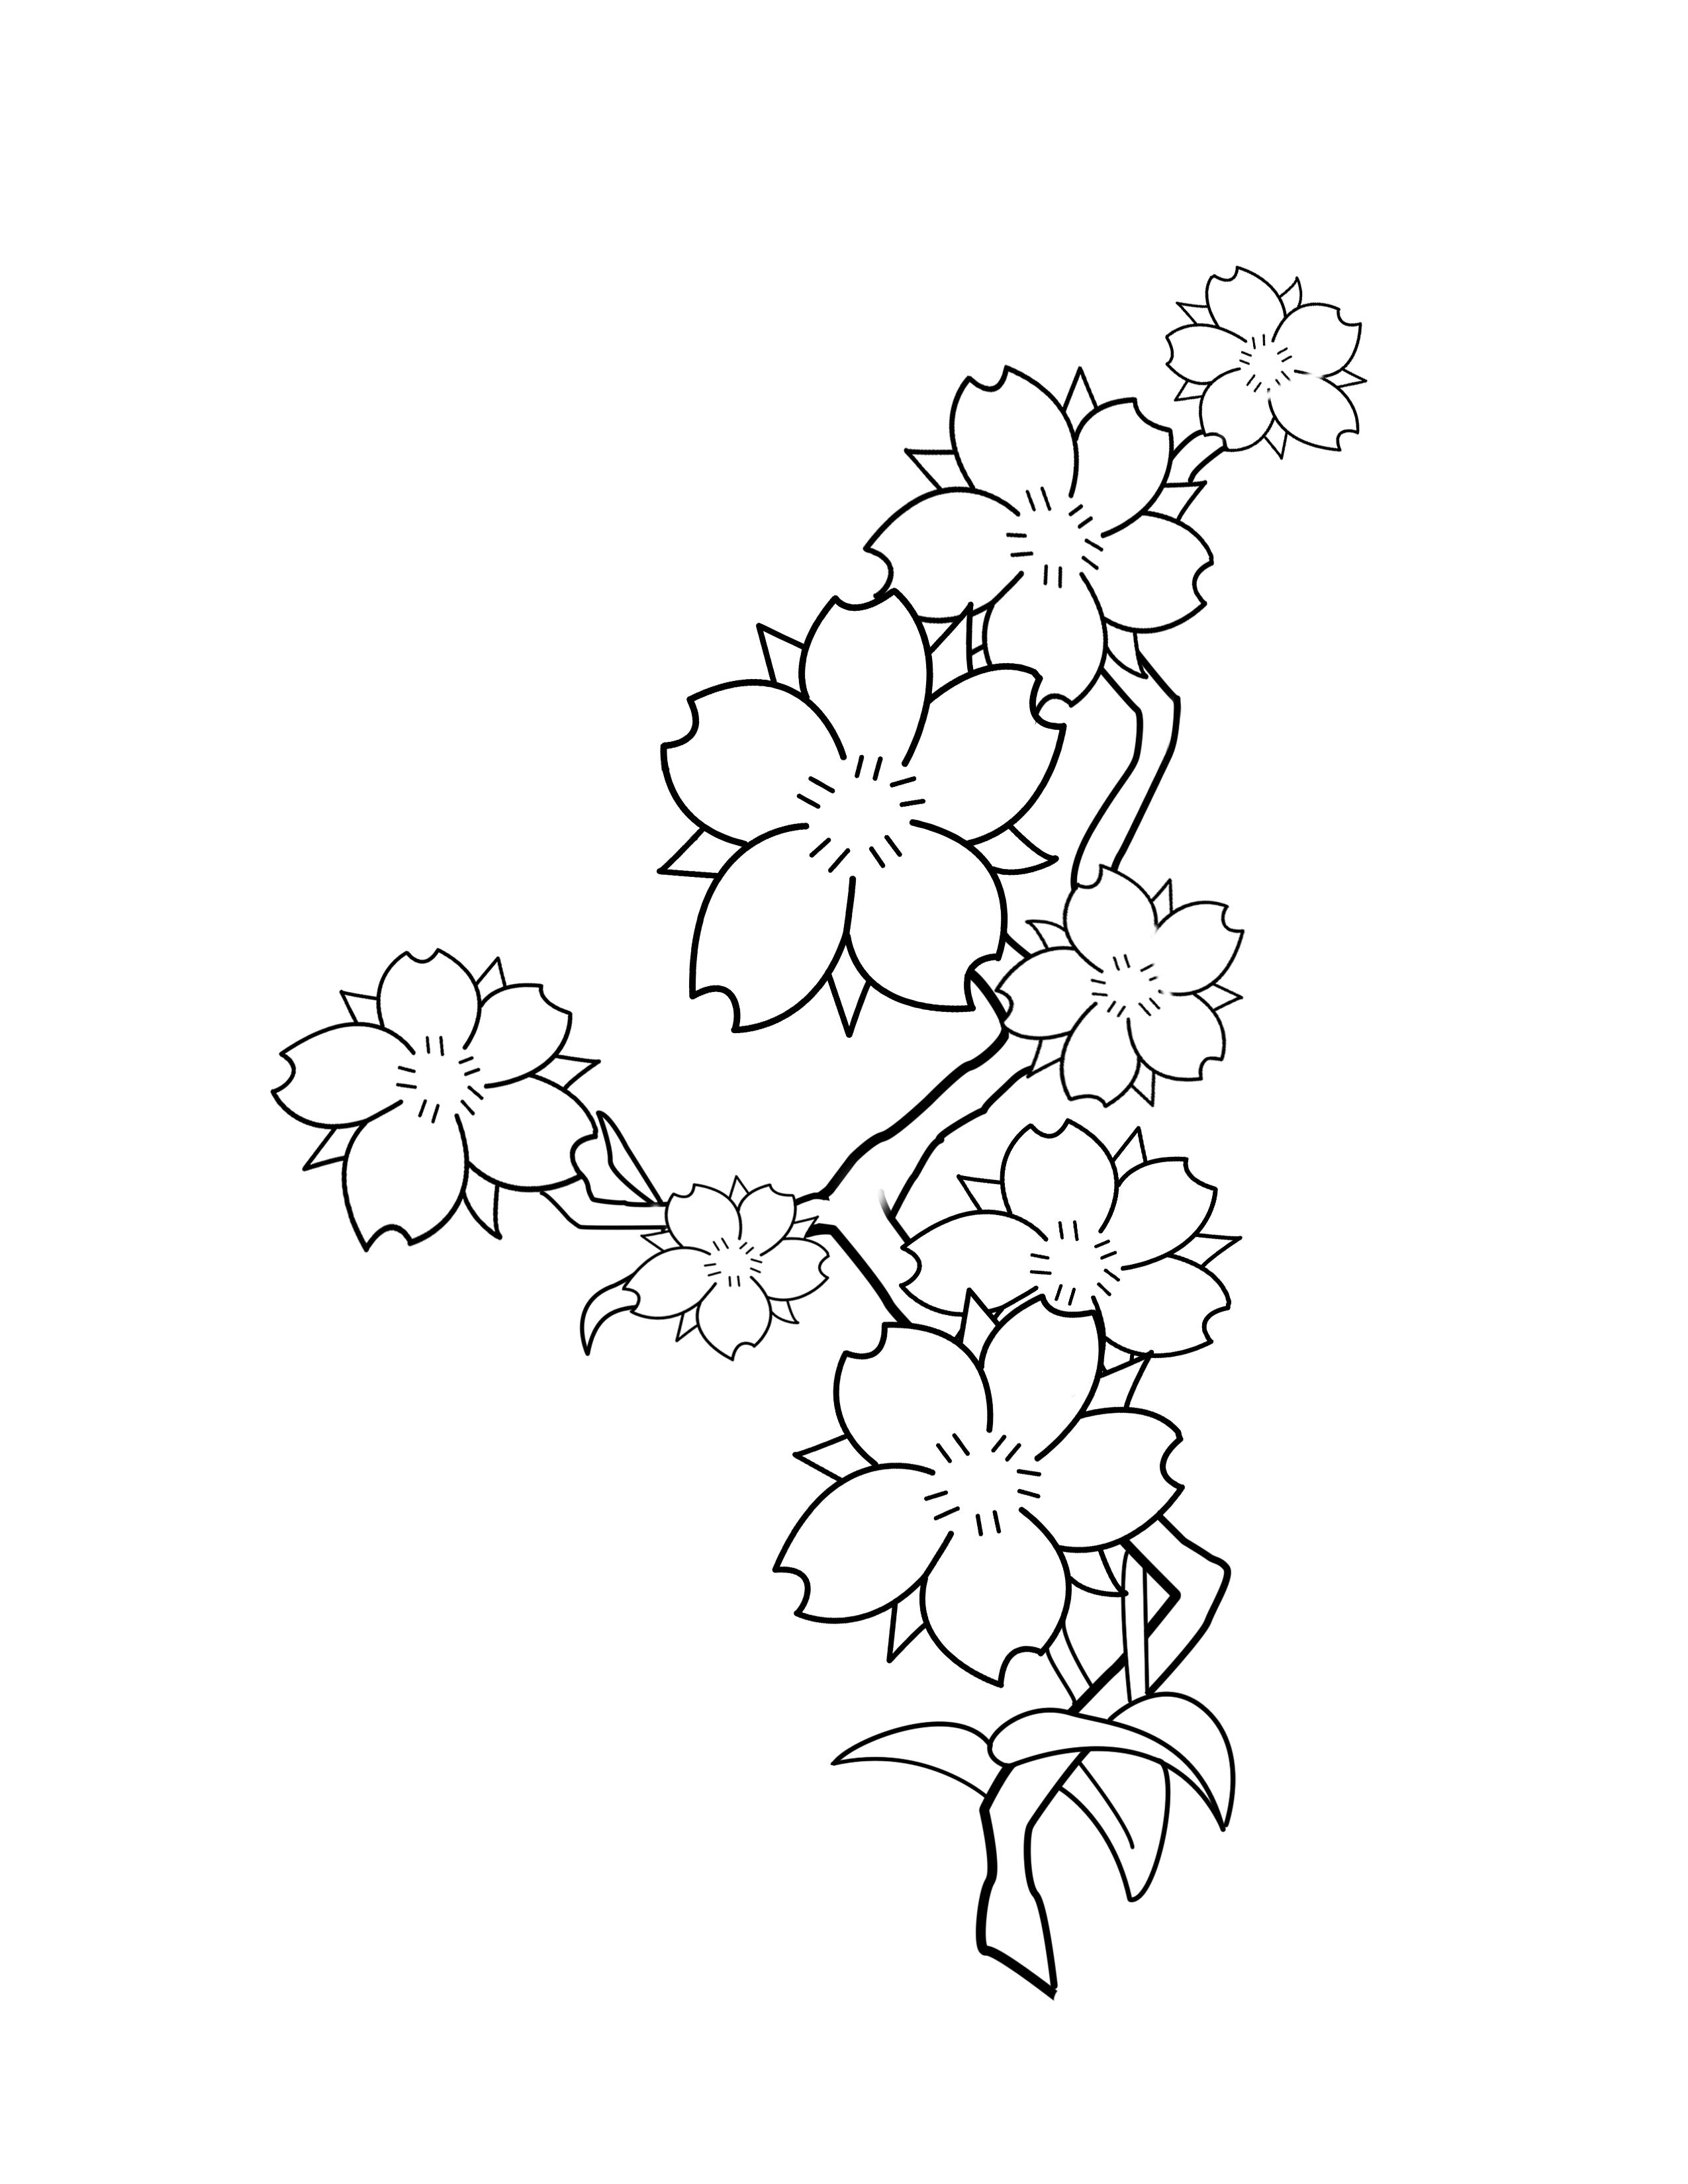 Lily Tattoo Line Drawing : Lily tattoos tattoo images gallery pictures